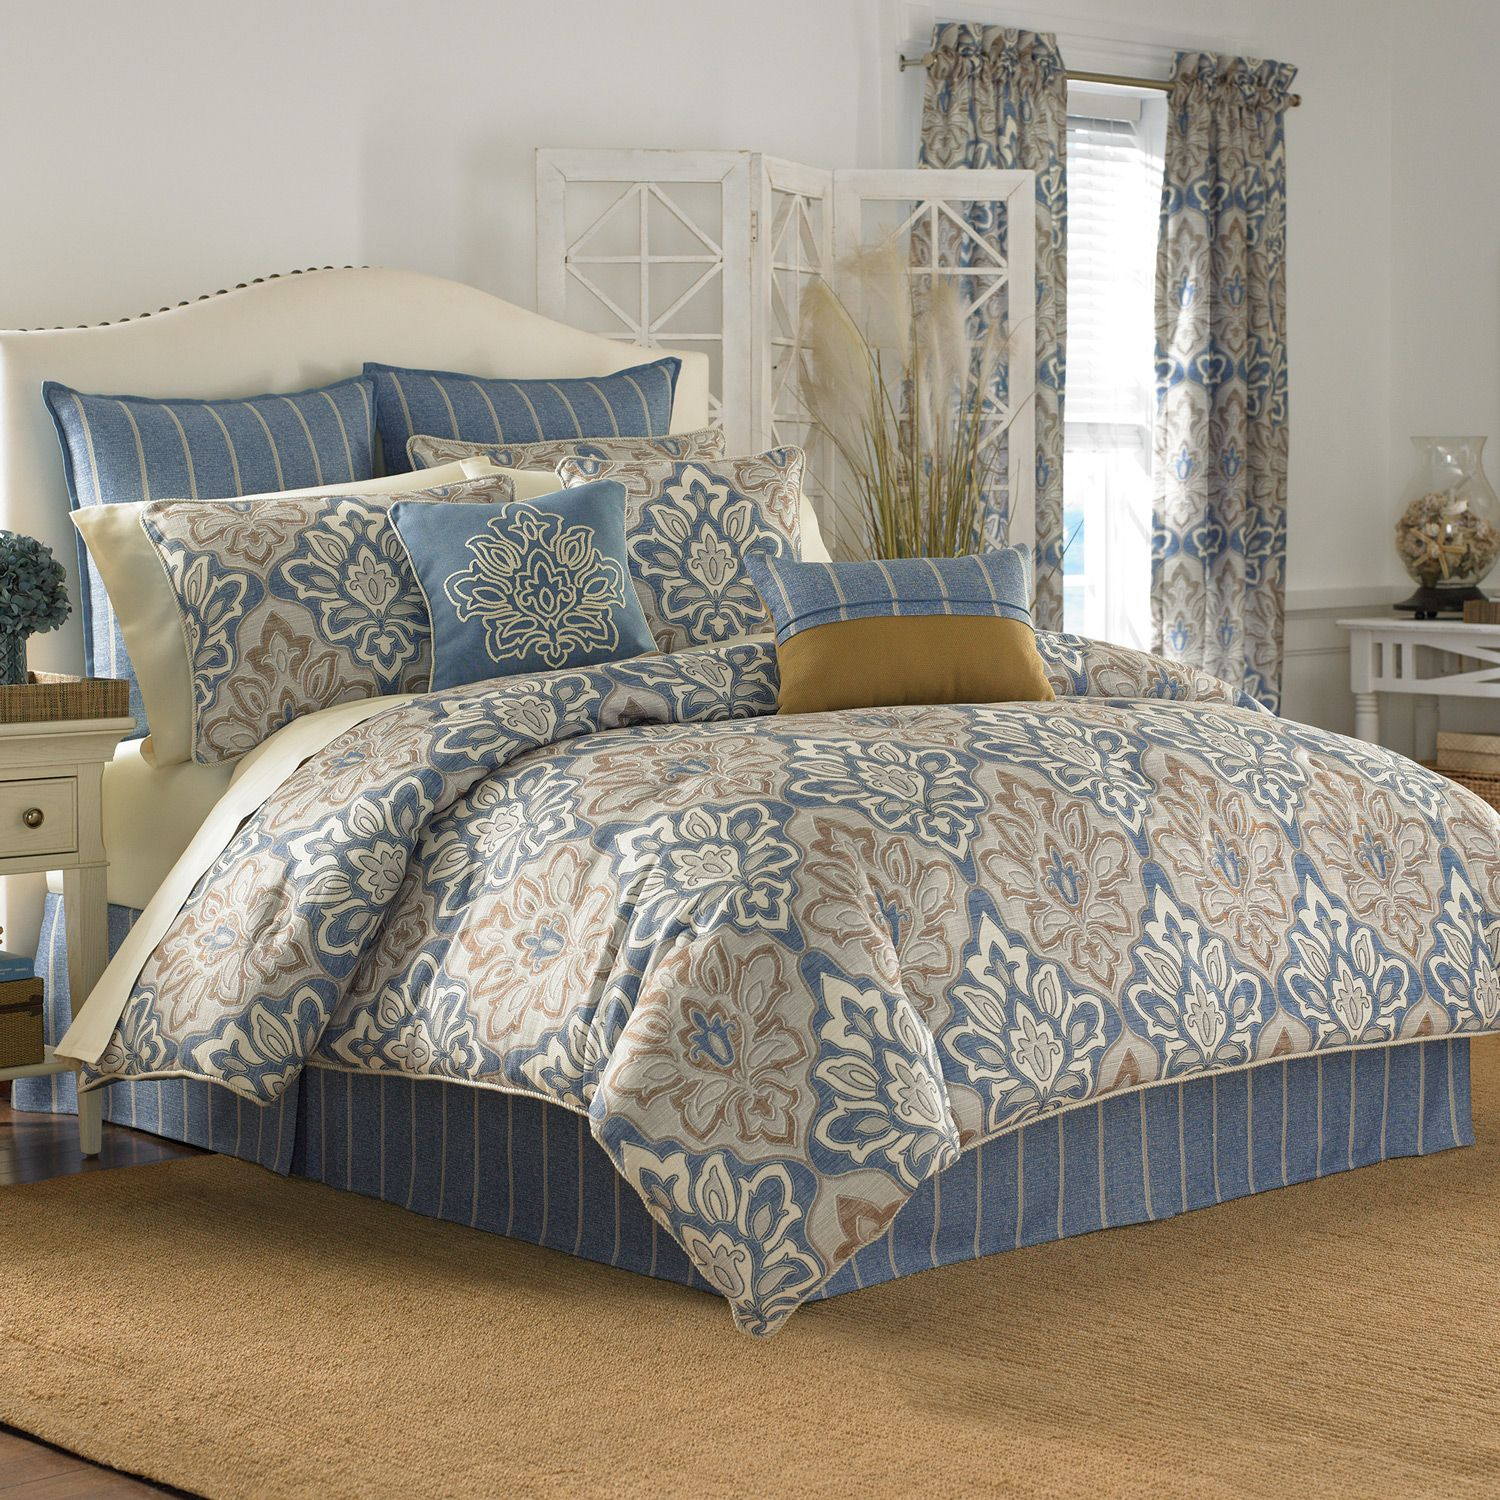 Chic comforters sets for bedroom design with queen comforter sets